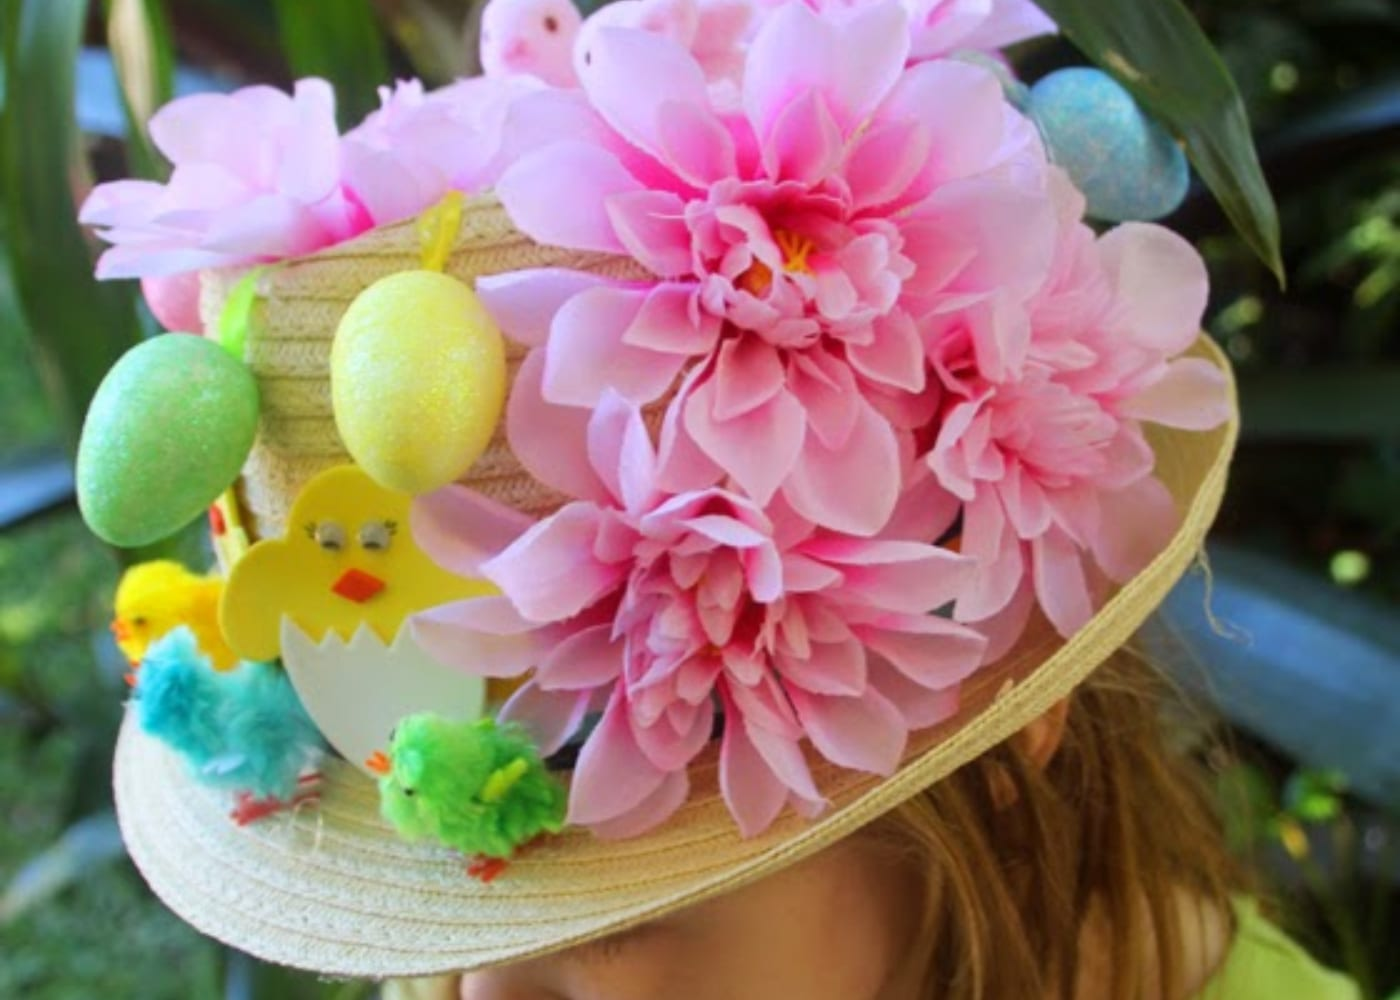 hat at home with ali flowers chicks